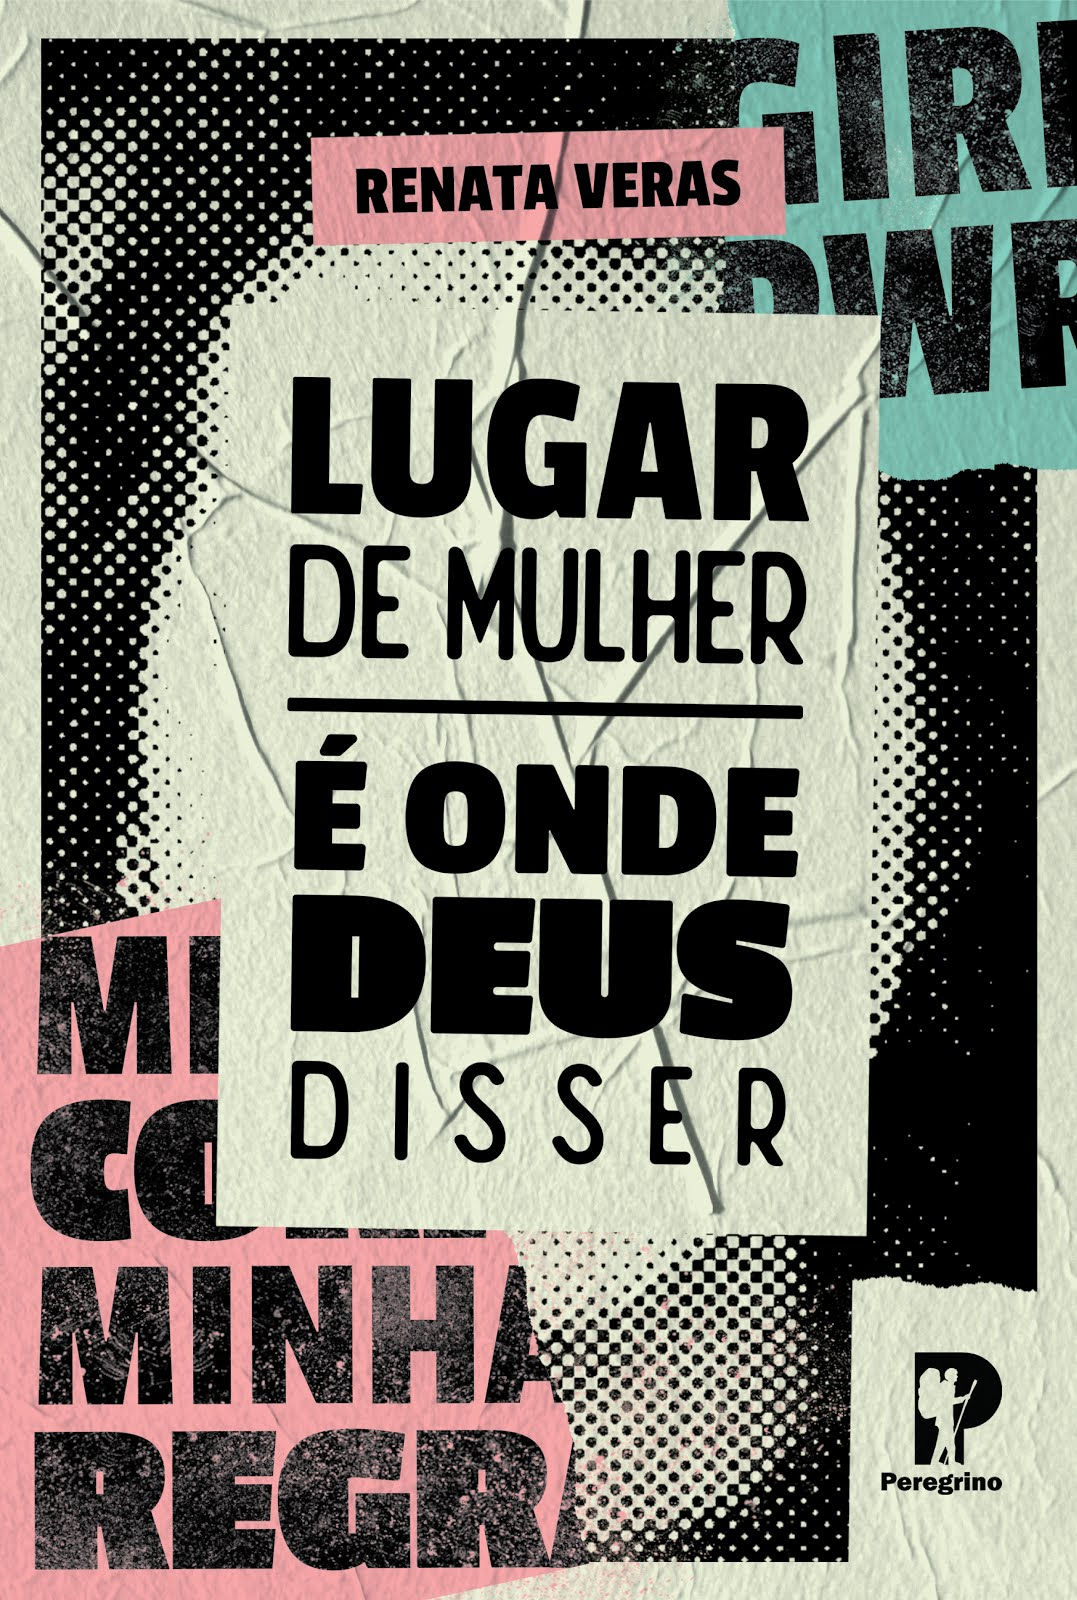 LIVRO: LUGAR DE MULHER É ONDE DEUS DISSER